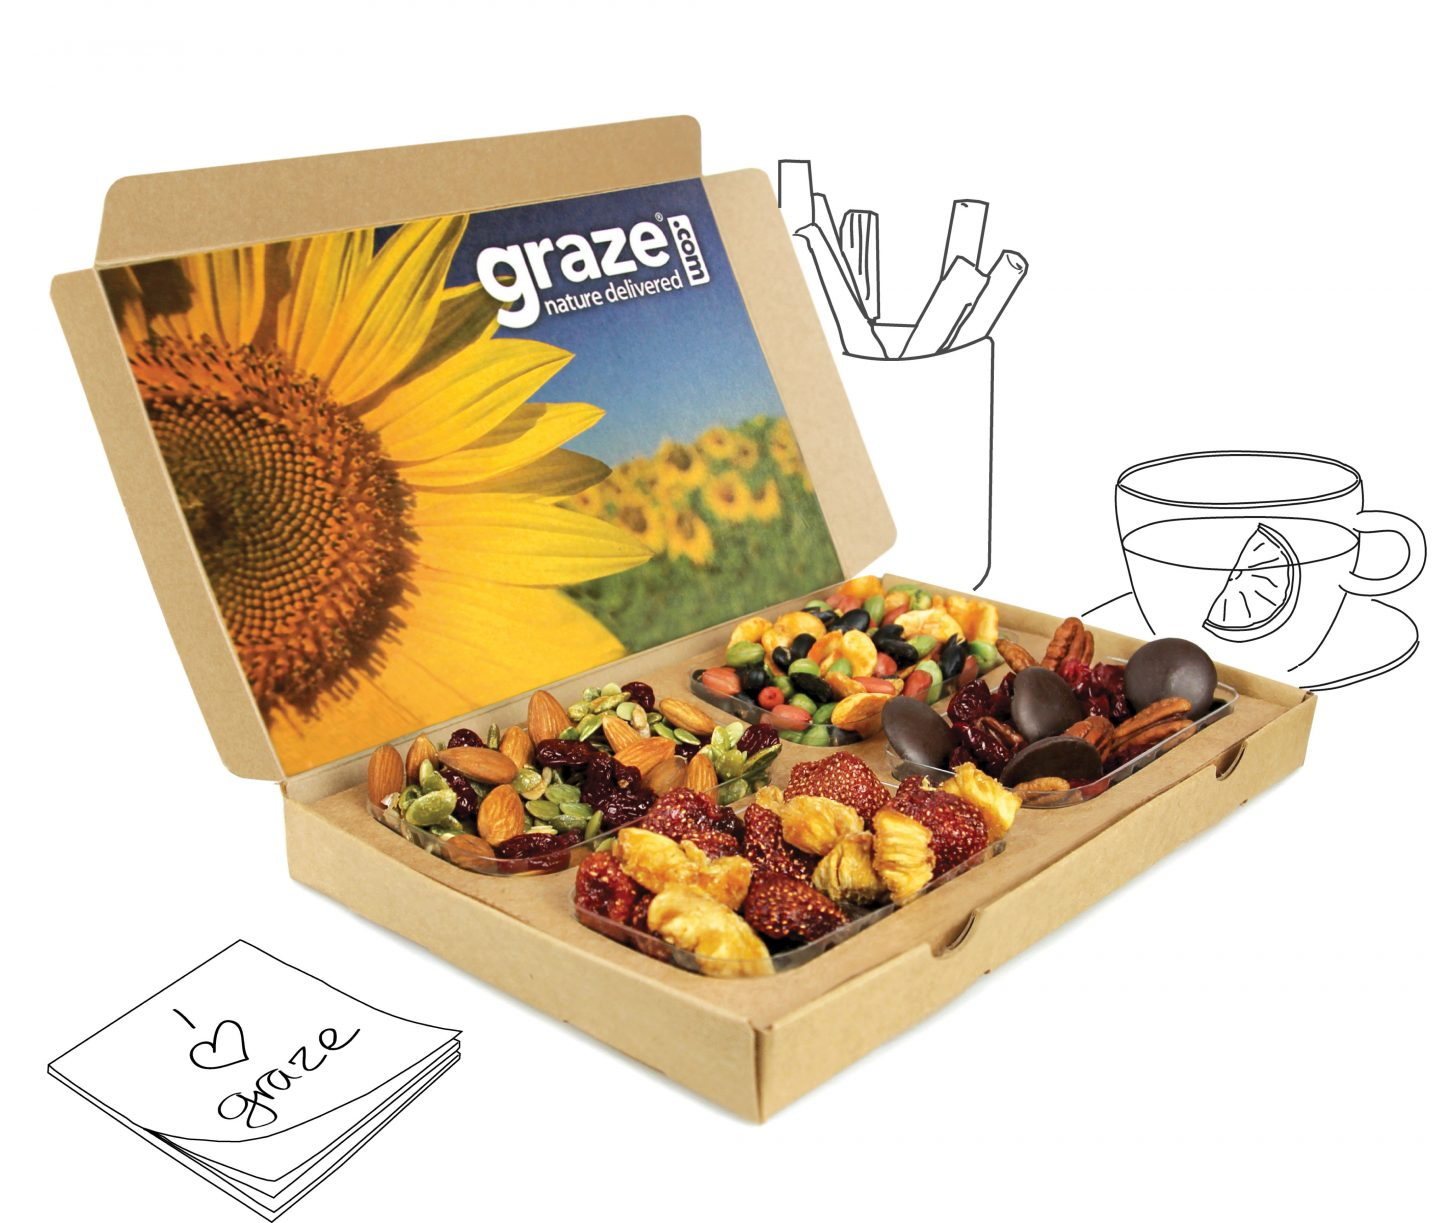 Graze Snack Box Review & Free Box Offer!